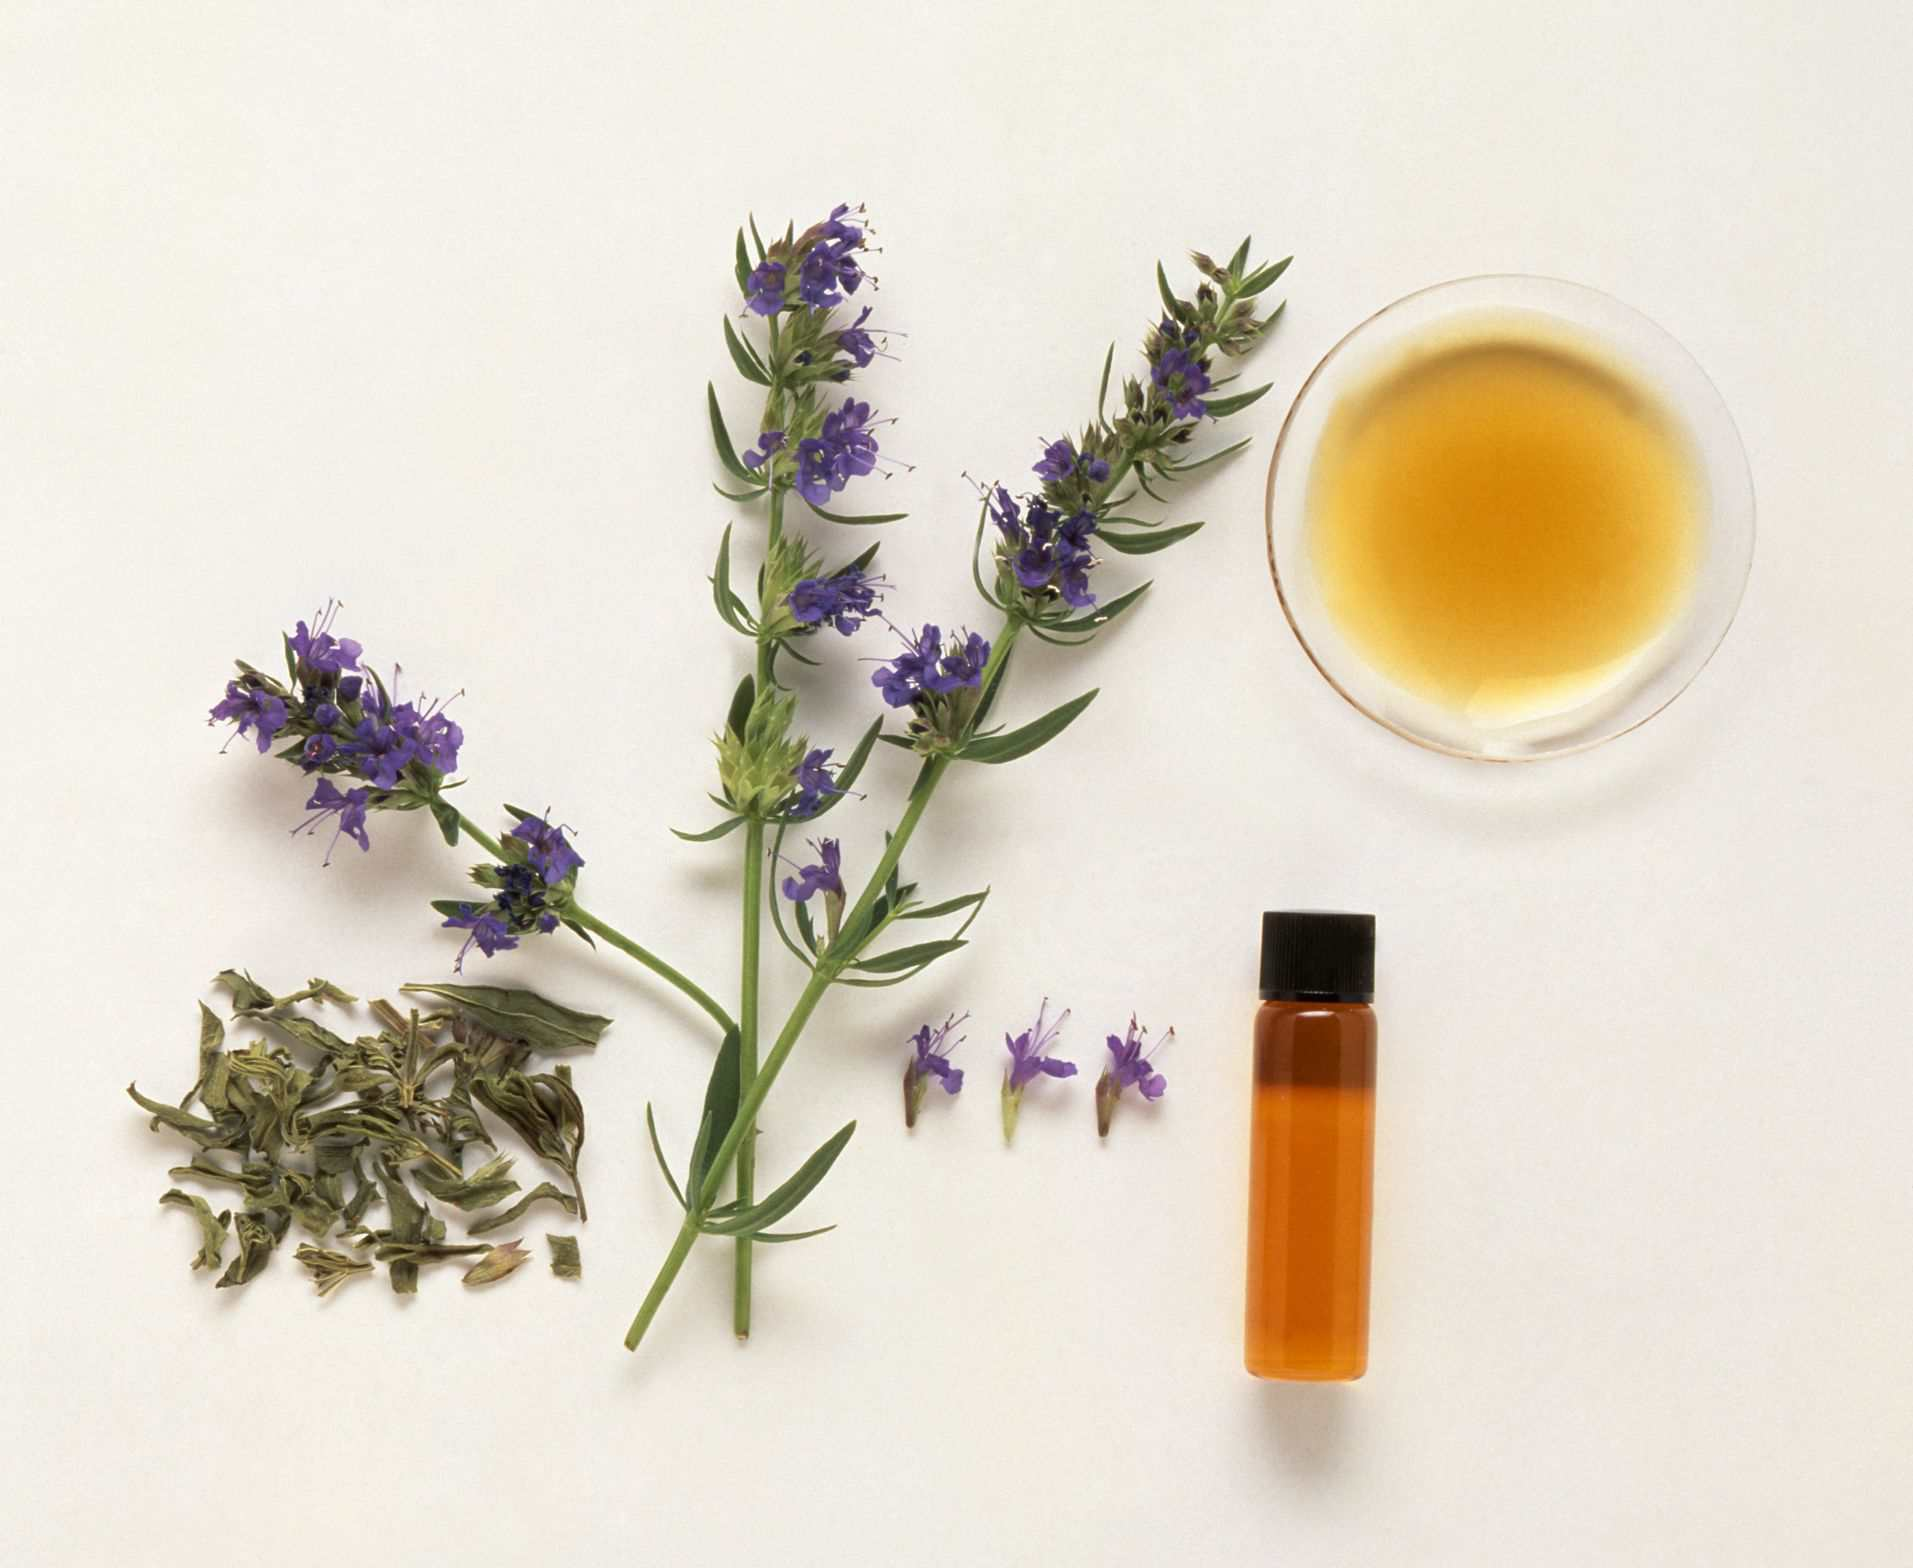 Hyssop: Benefits, Side Effects, Dosage, and Interactions